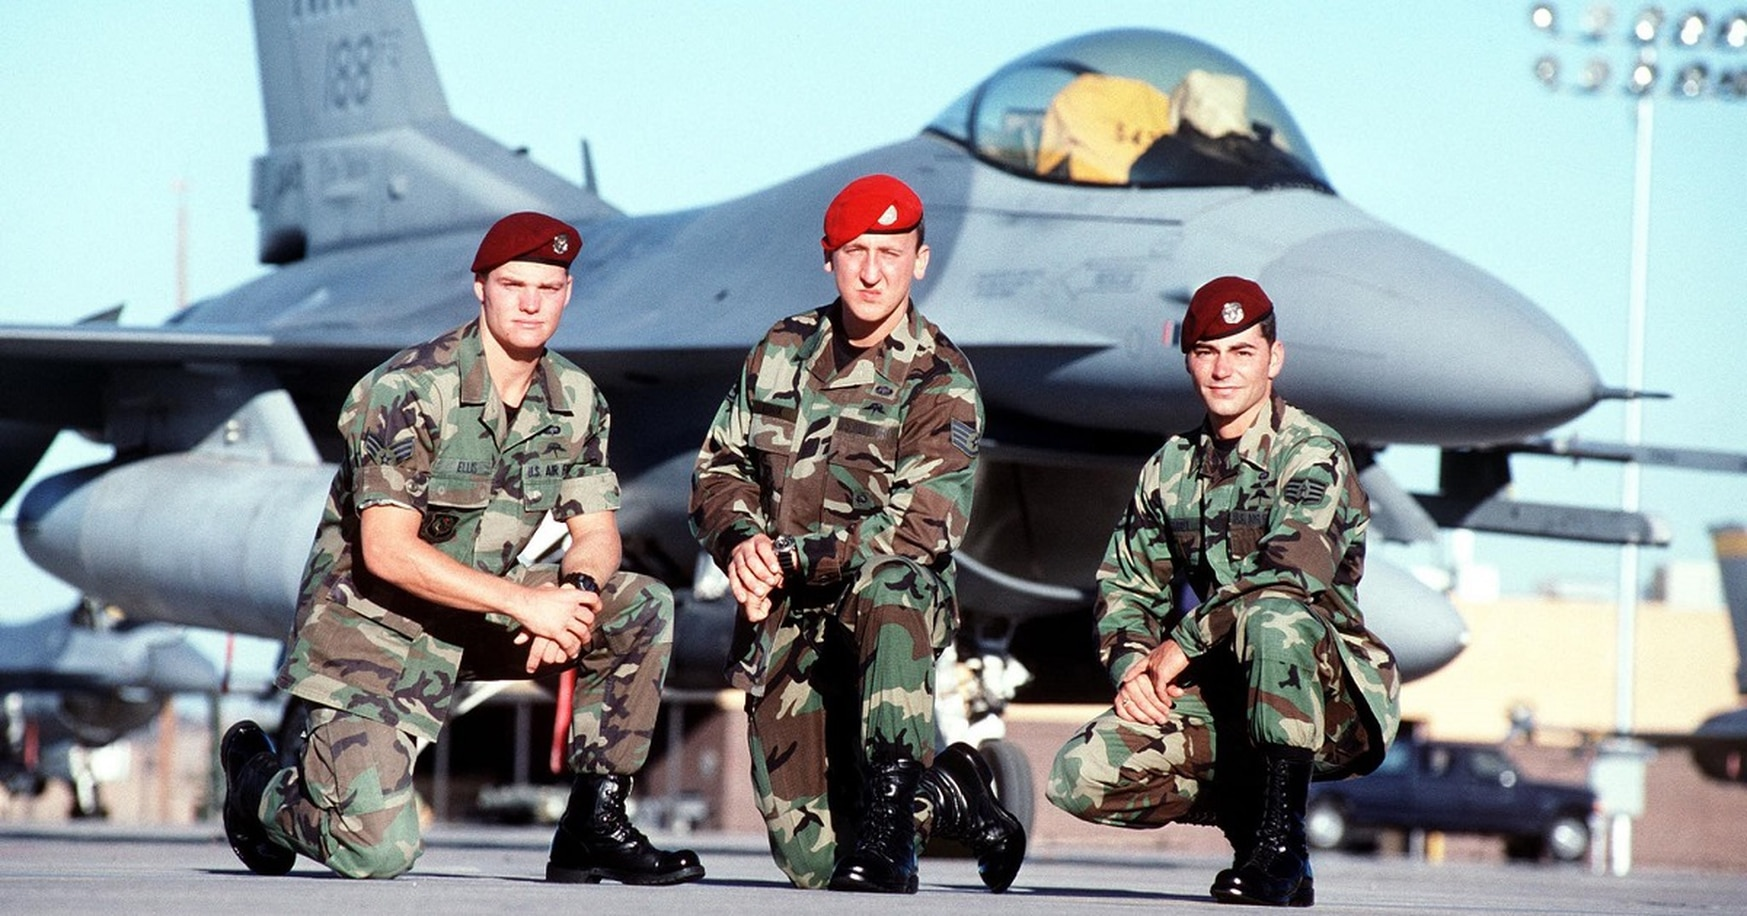 In 2000, a year after the rescue, Senior Airman Ron Ellis, from left, and Staff Sgts. Andy Kubik and Jeremy Hardy posed in front of an F-16 Fighting Falcon at Hurlburt Field, Florida. (Airman Magazine)